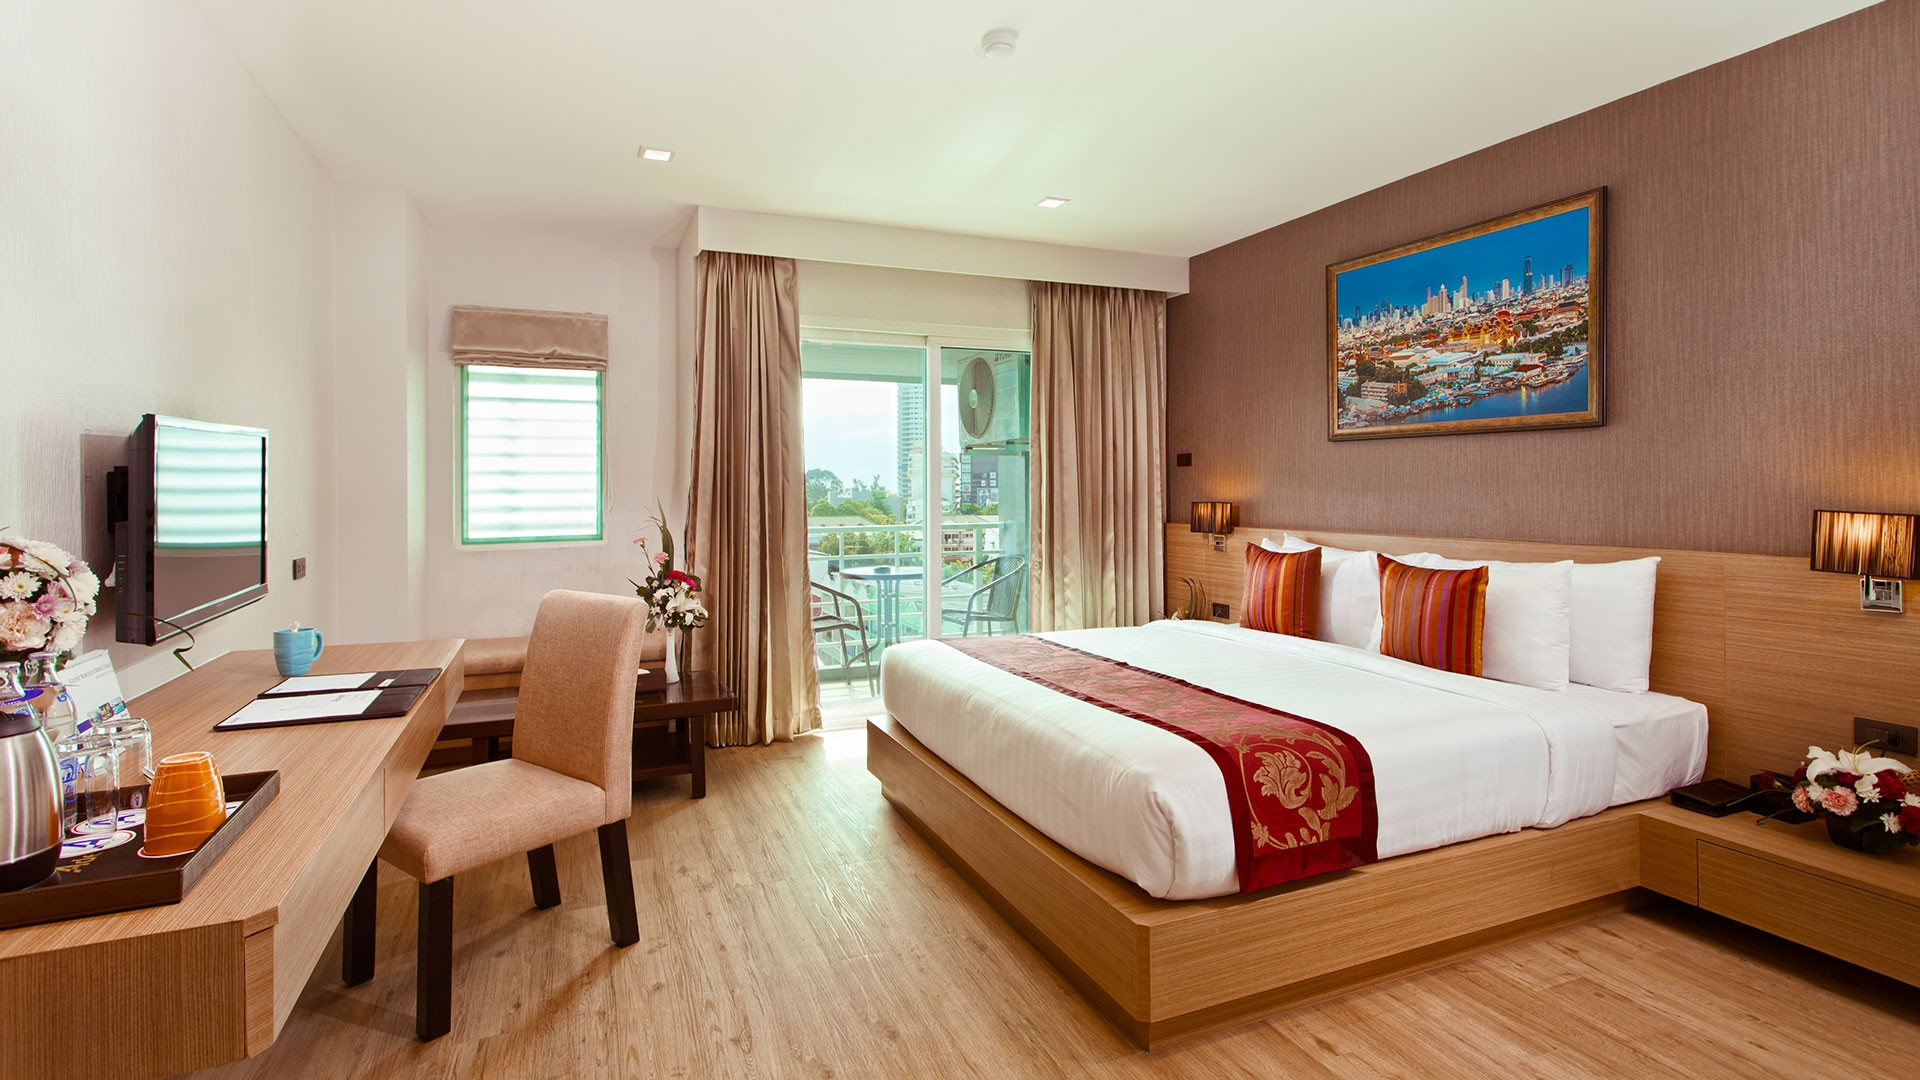 Adelphi-pattaya-deluxe-with-balcony-banner.jpg